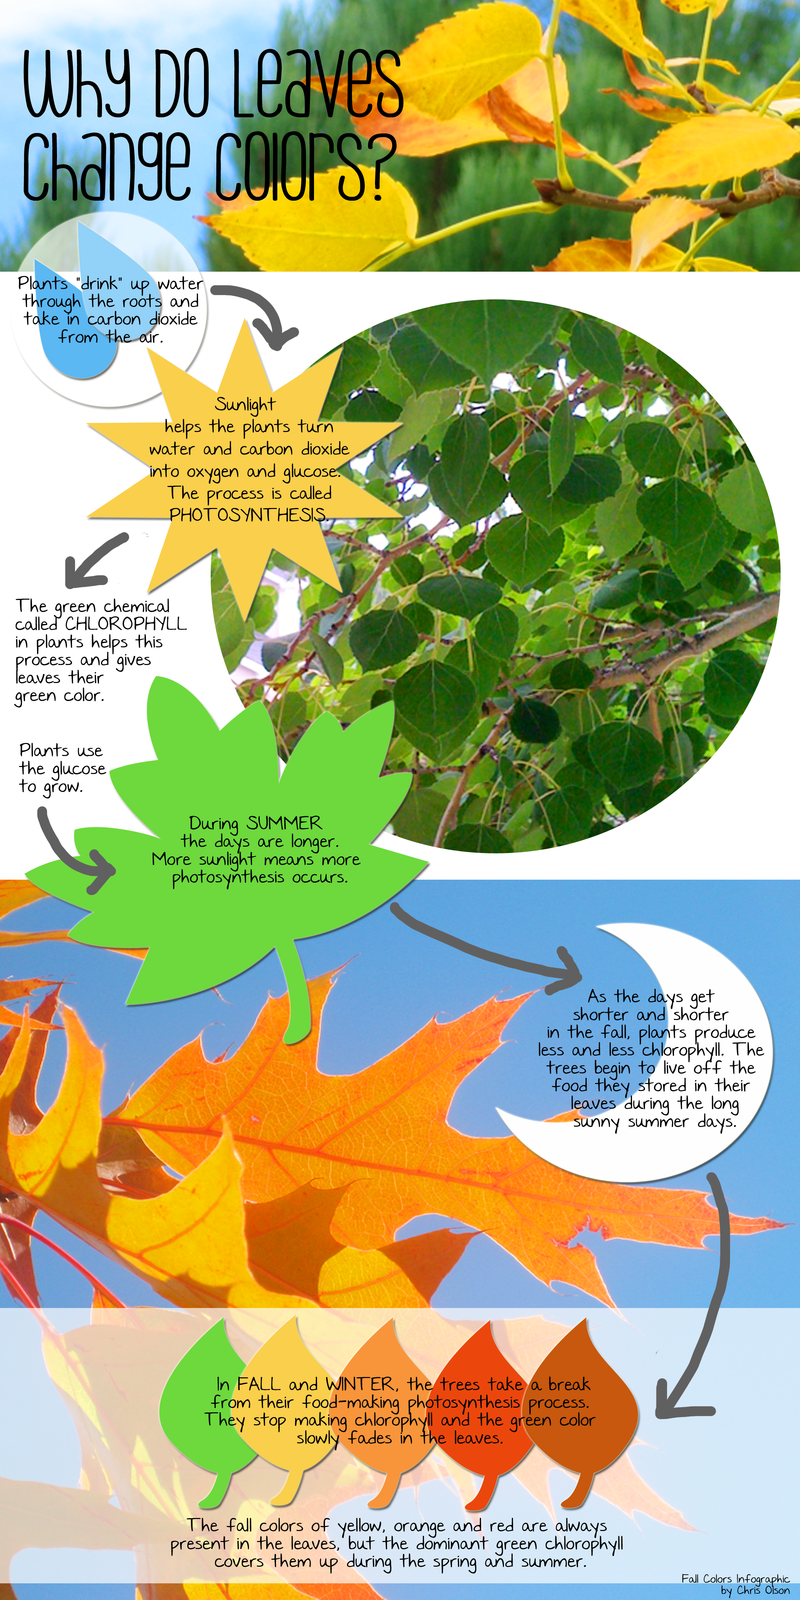 Why Do Leaves Change Colors in Fall? | Change colour, Infographic ...